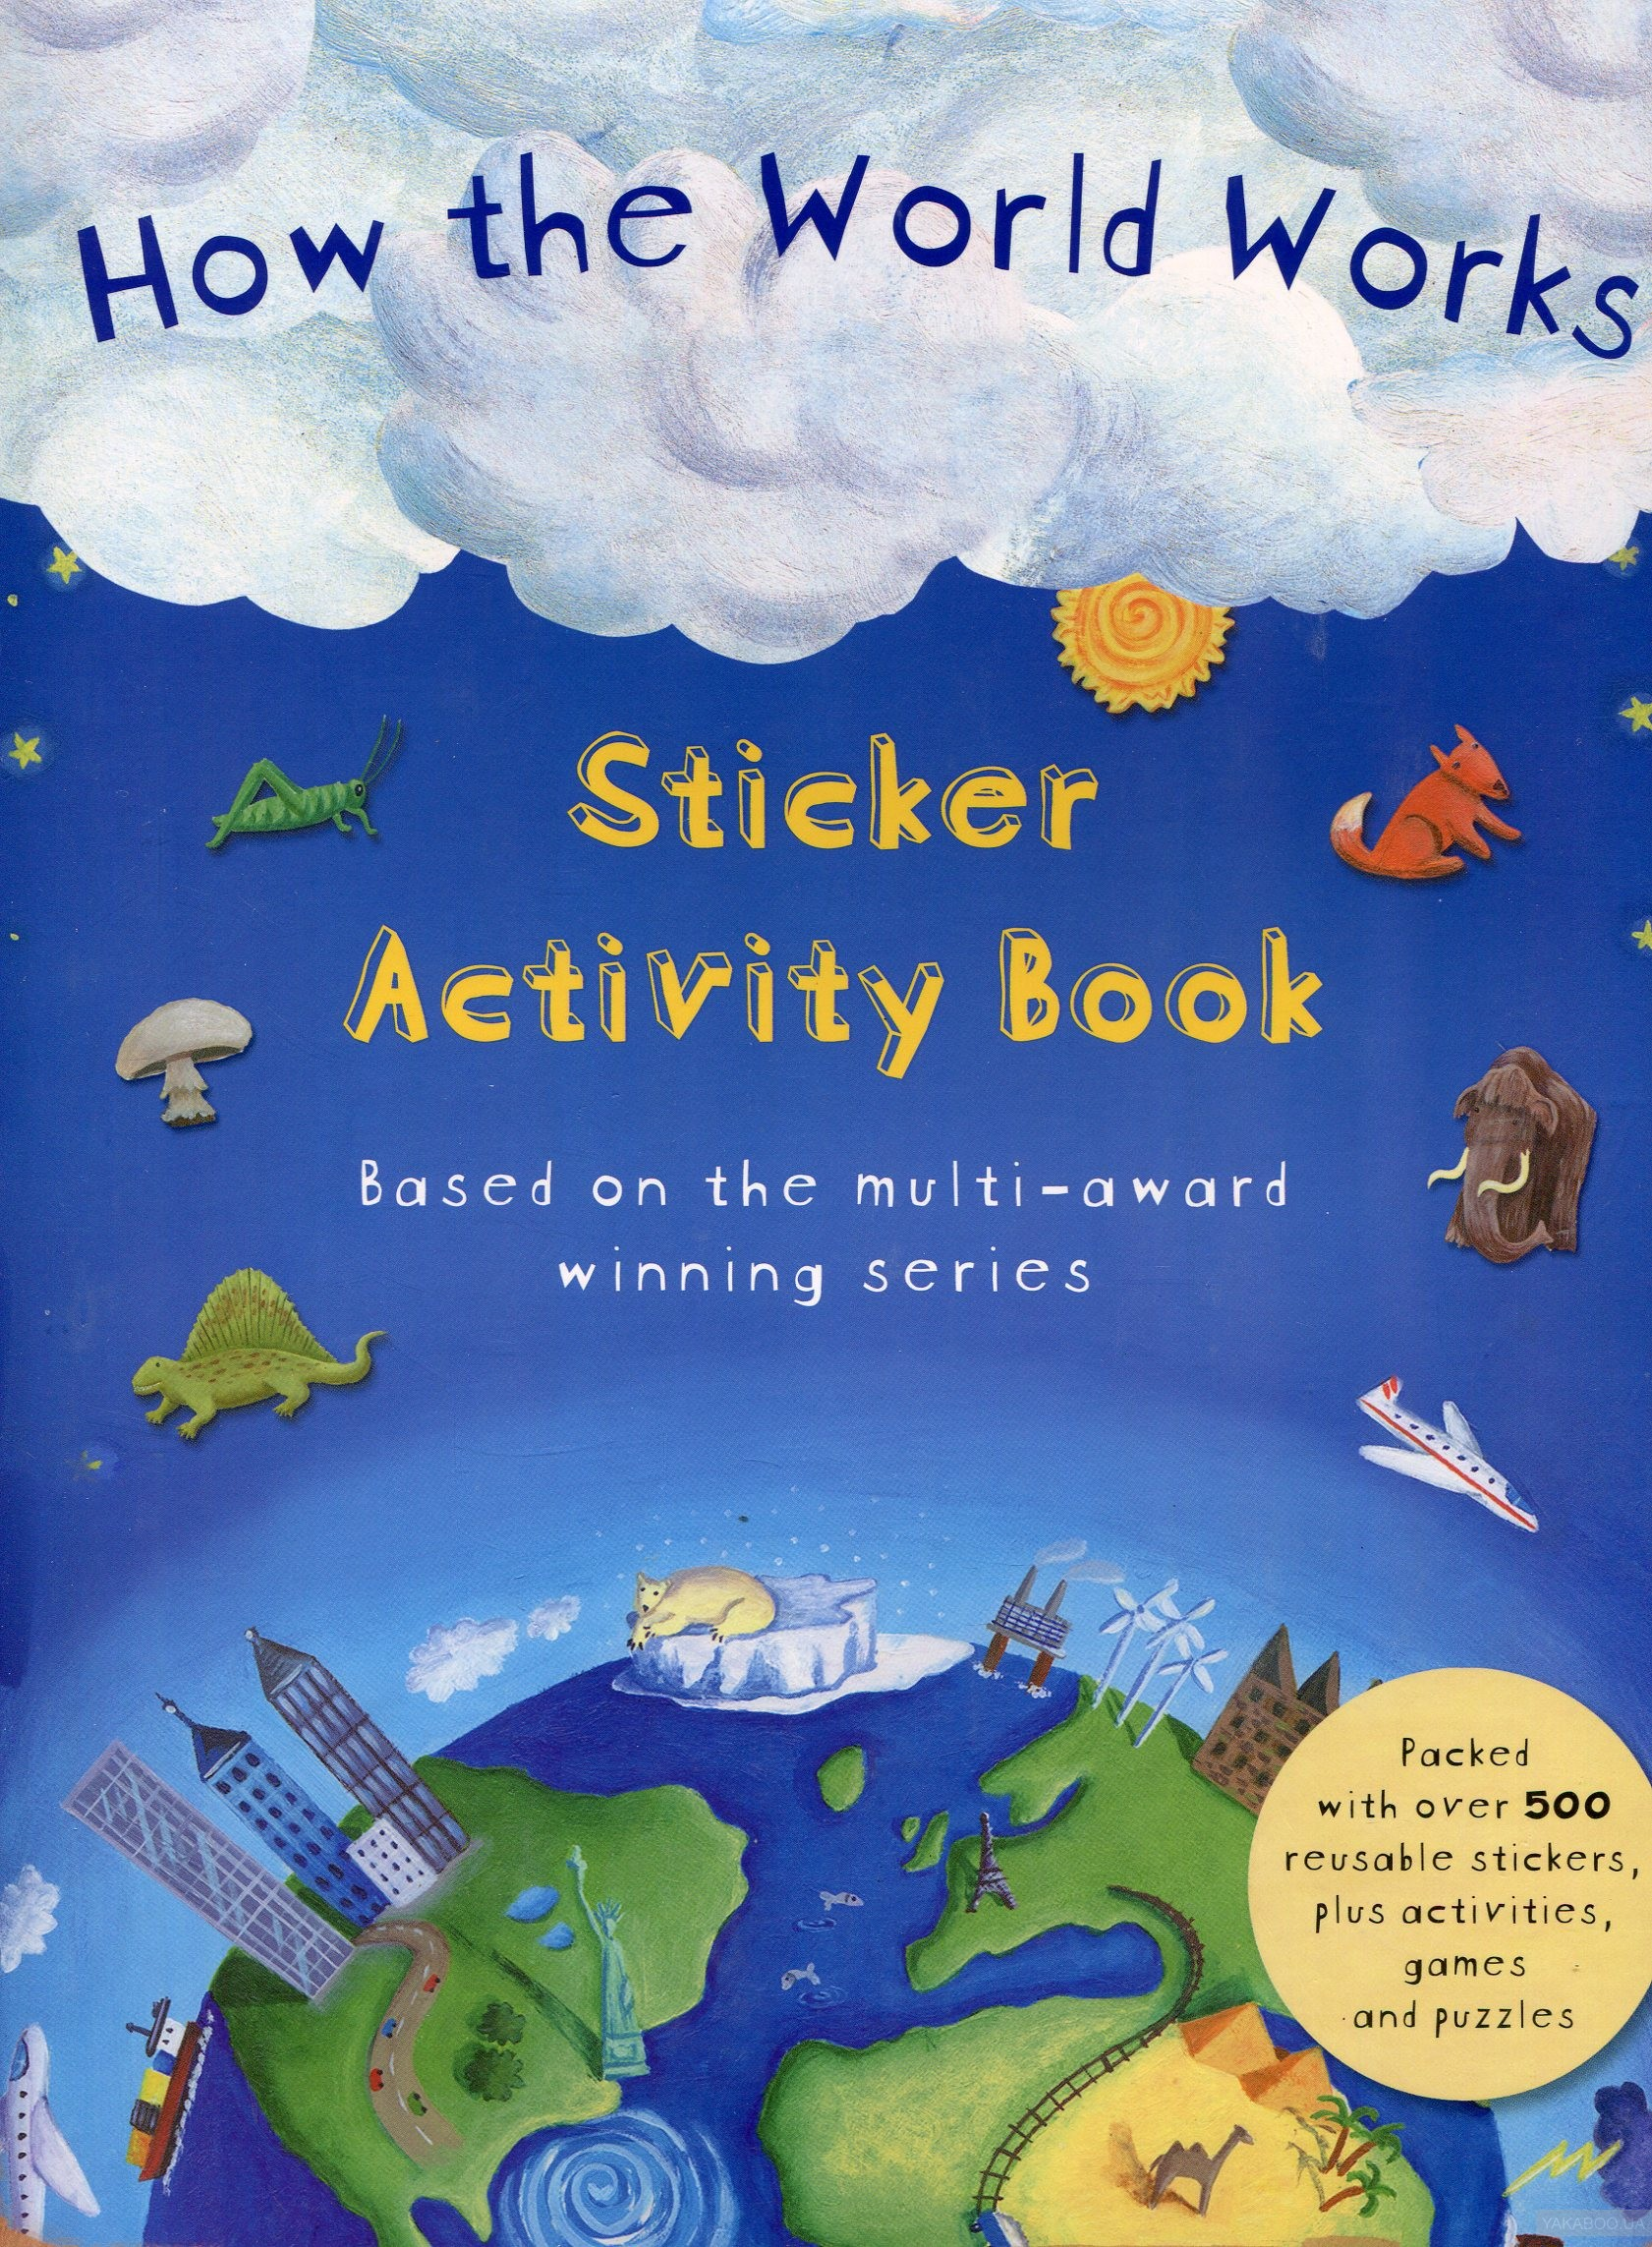 How the World Works Sticker Activity Book